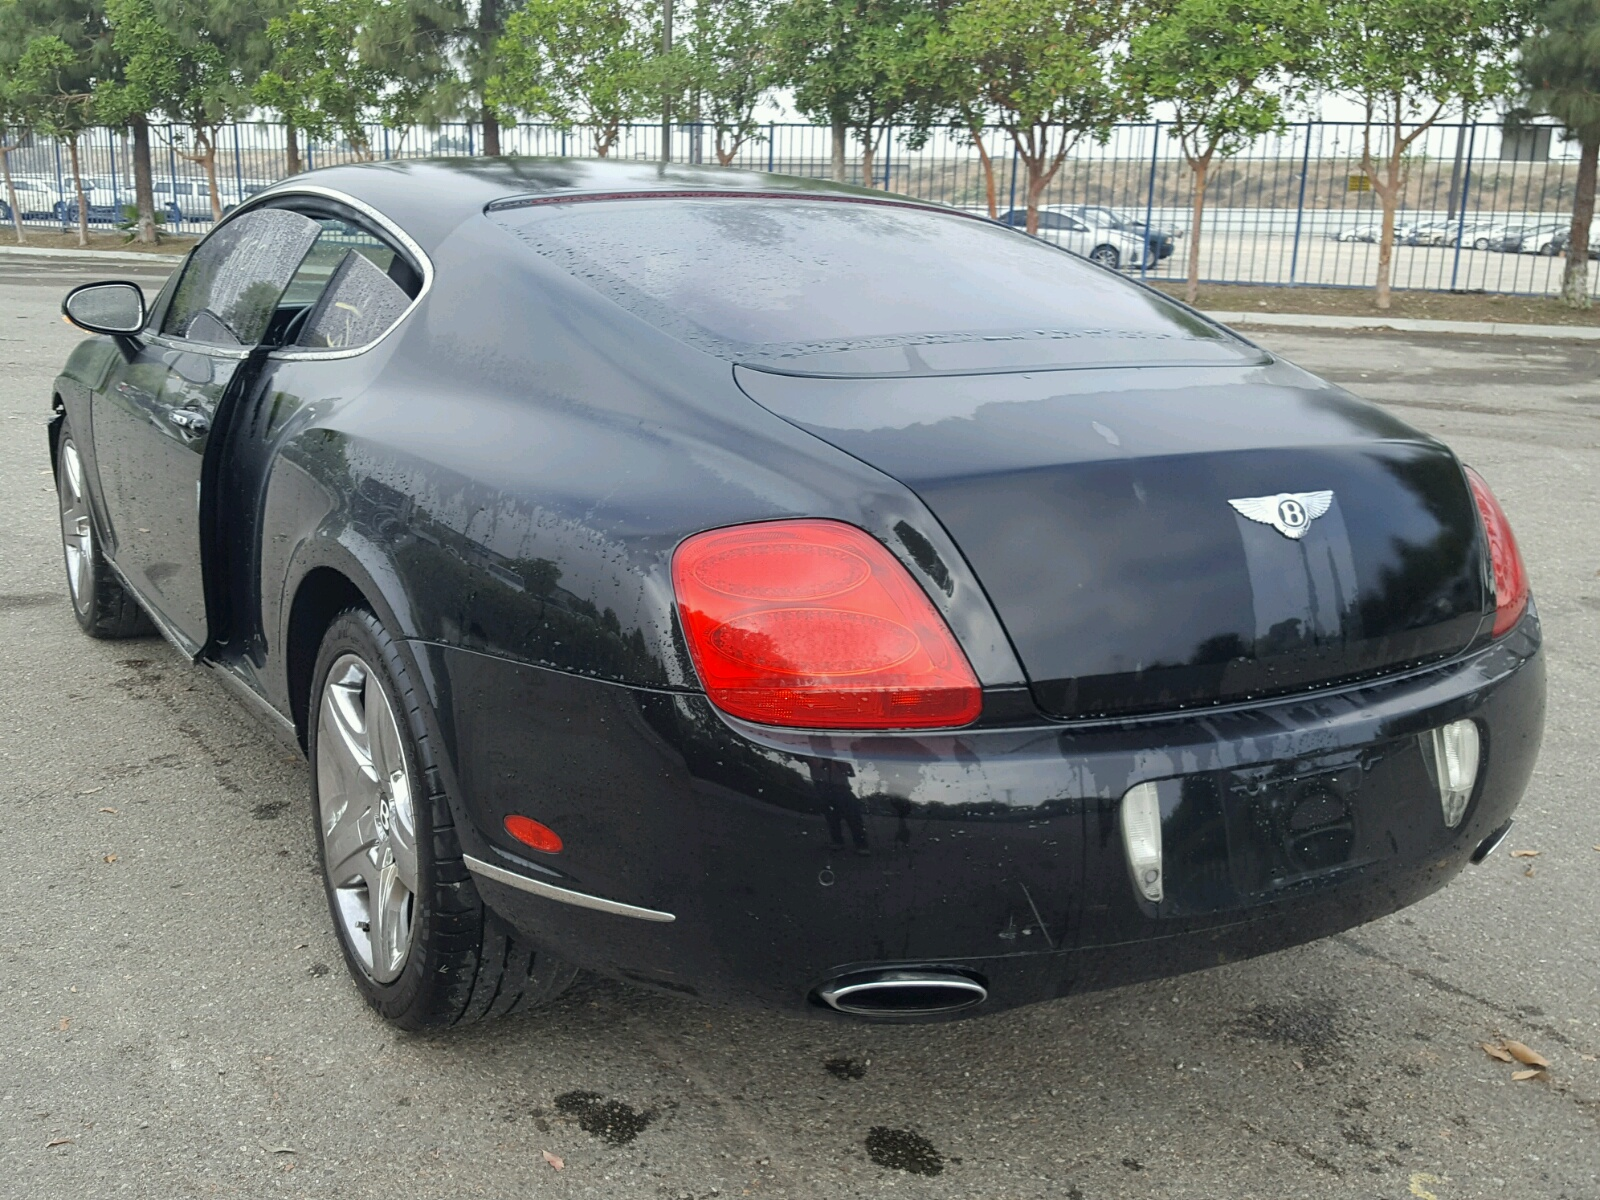 used for continental flying bentley gt sale a in malaysia buy xsyifytp spur